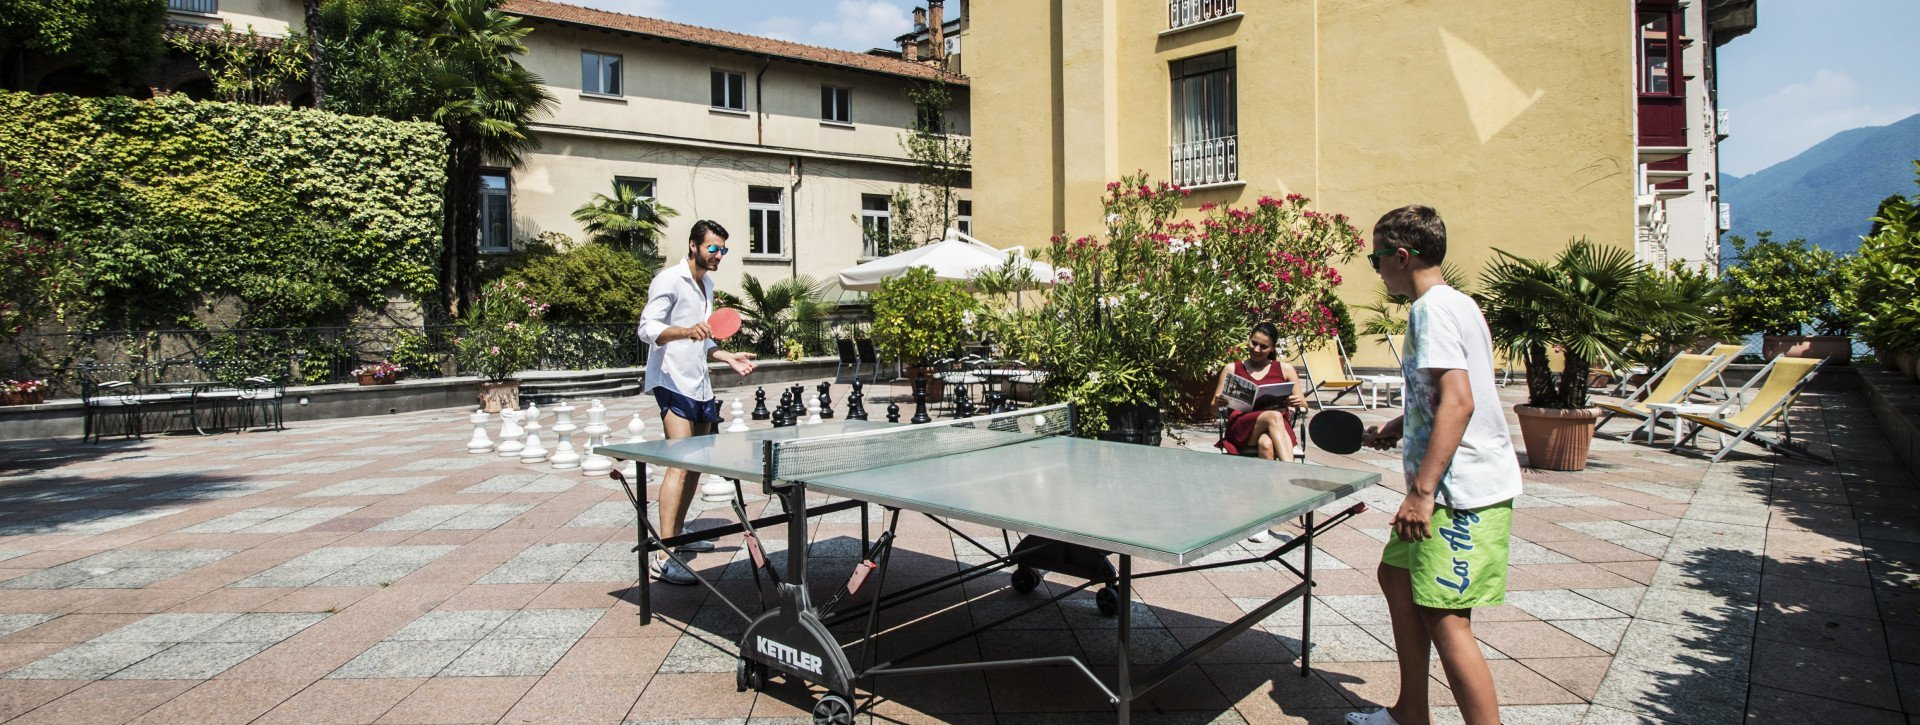 Two boys play ping pong in the sun